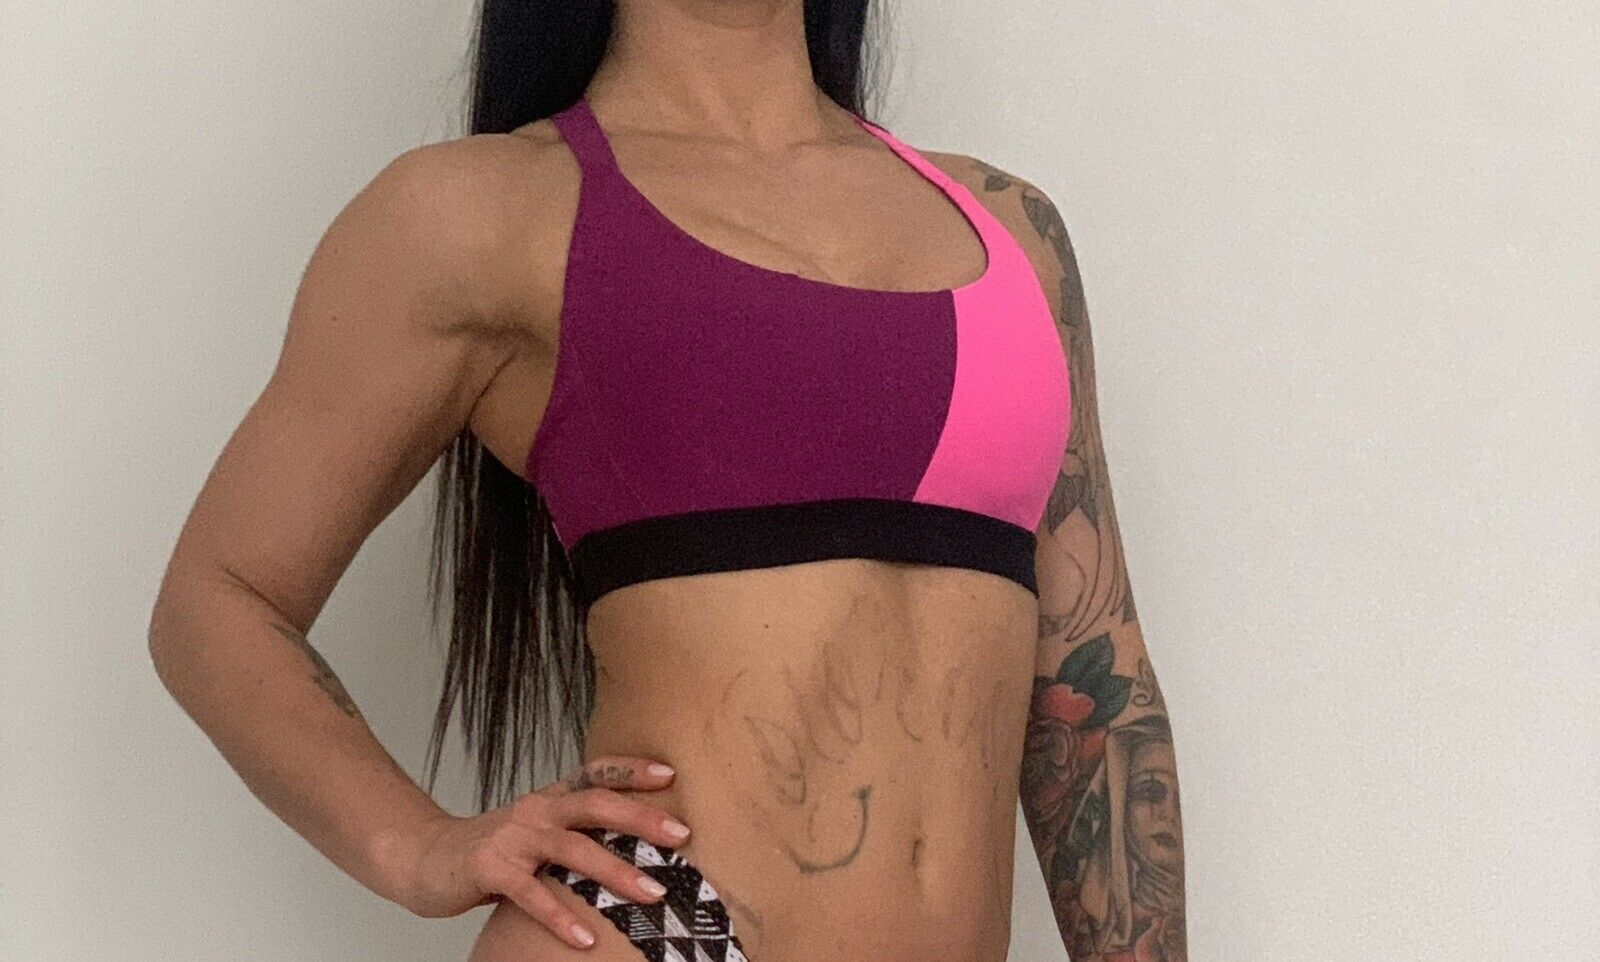 Soul by SoulCycle Cross Color Bra BURGUNDY - Size Small